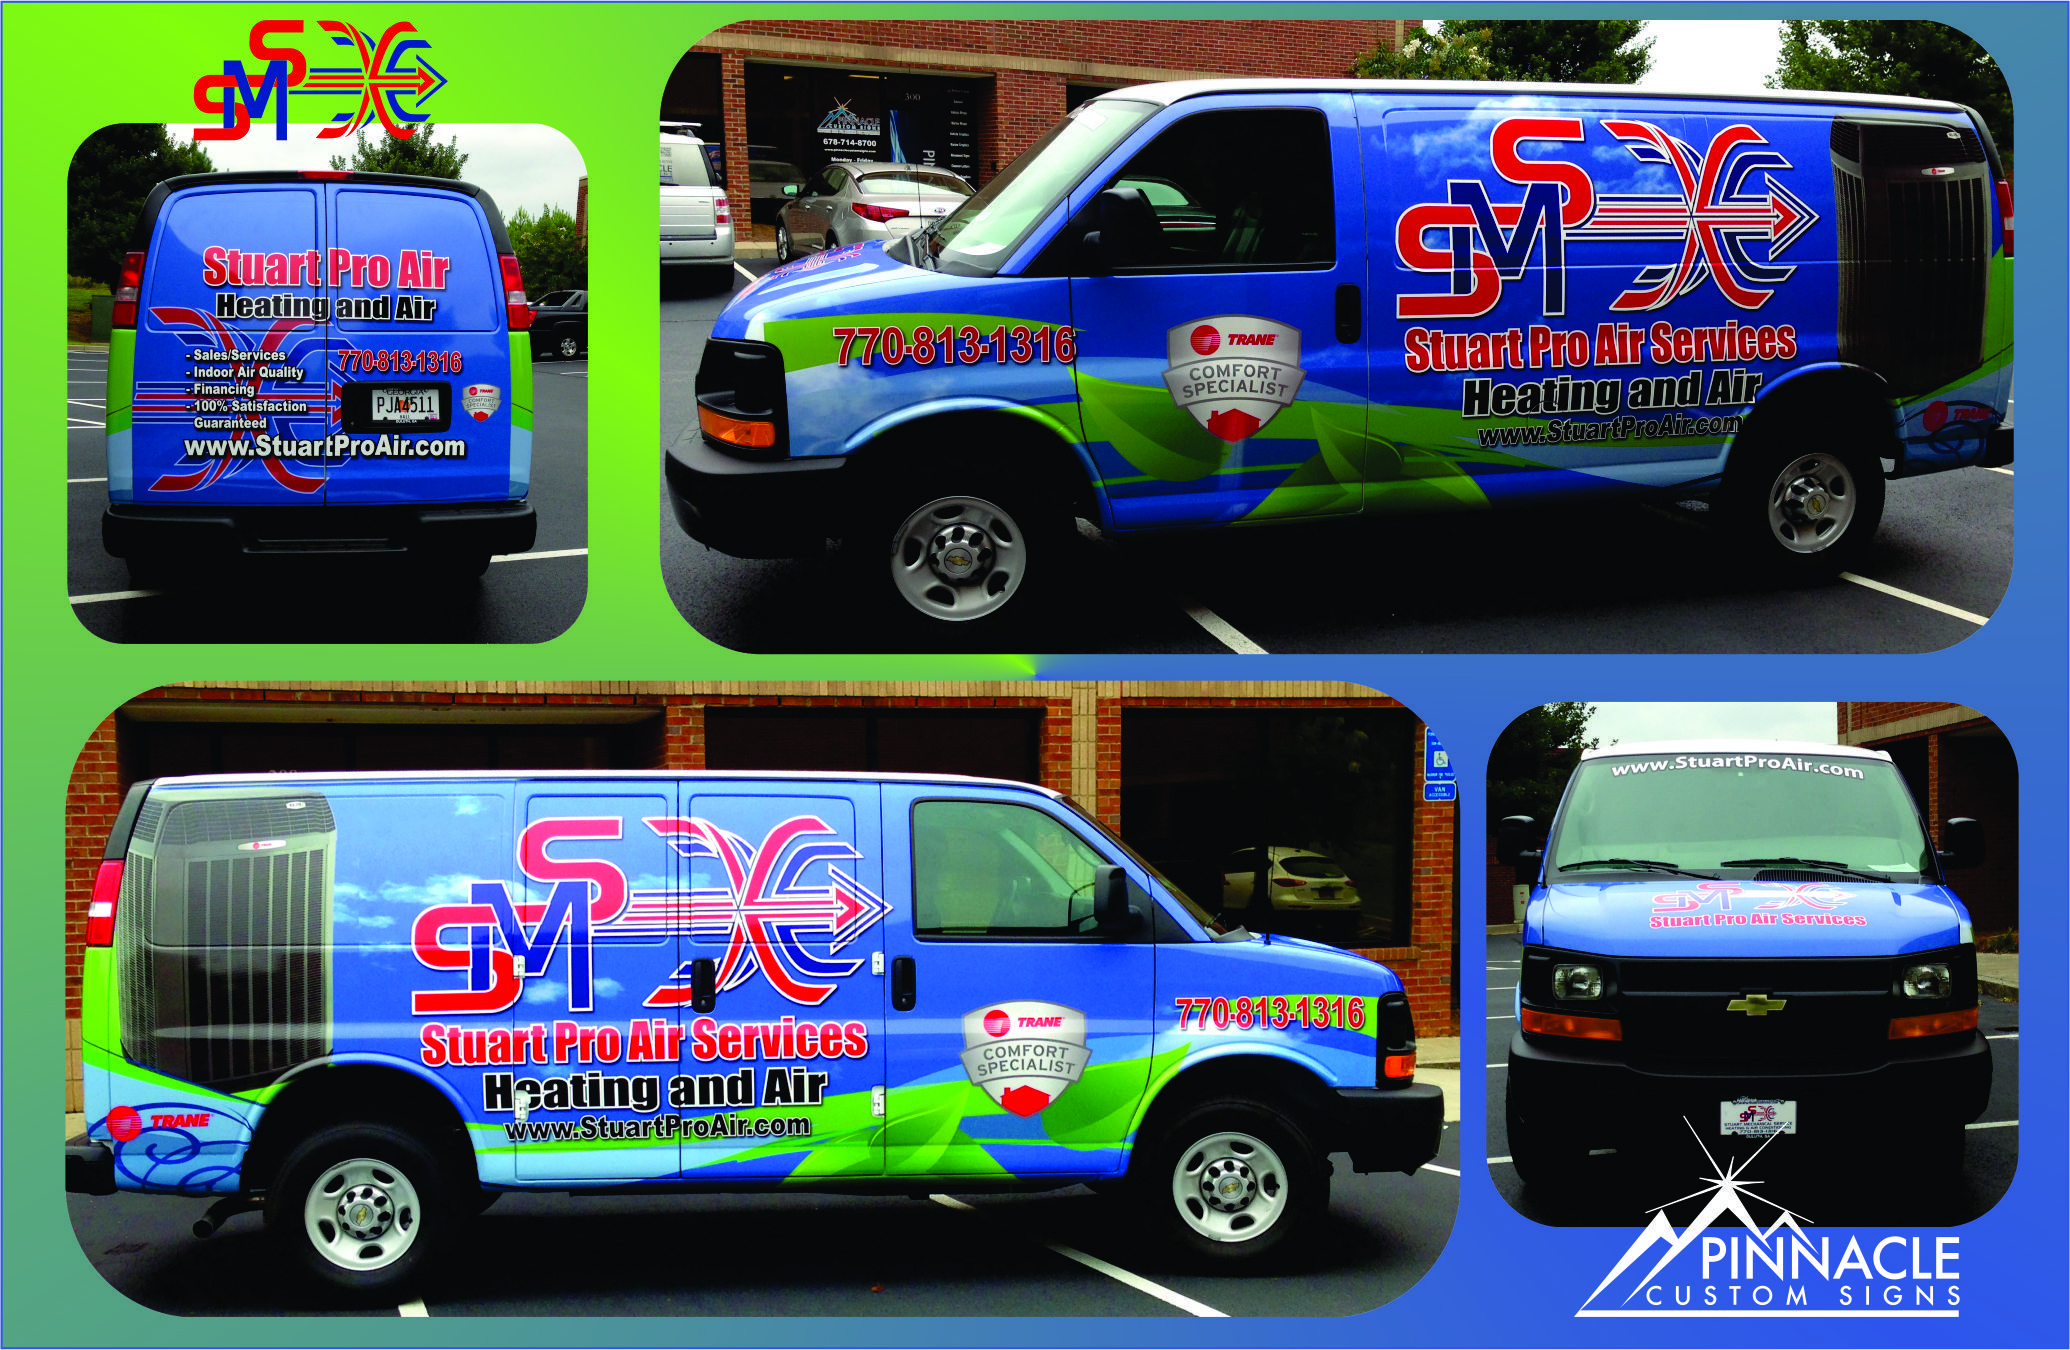 Van Wrap For Stuart Pro Air In Buford Ga Flashy Graphics Get These Vans Noticed On The Busy Atlanta Streets Sign Design Car Lettering Van Wrap